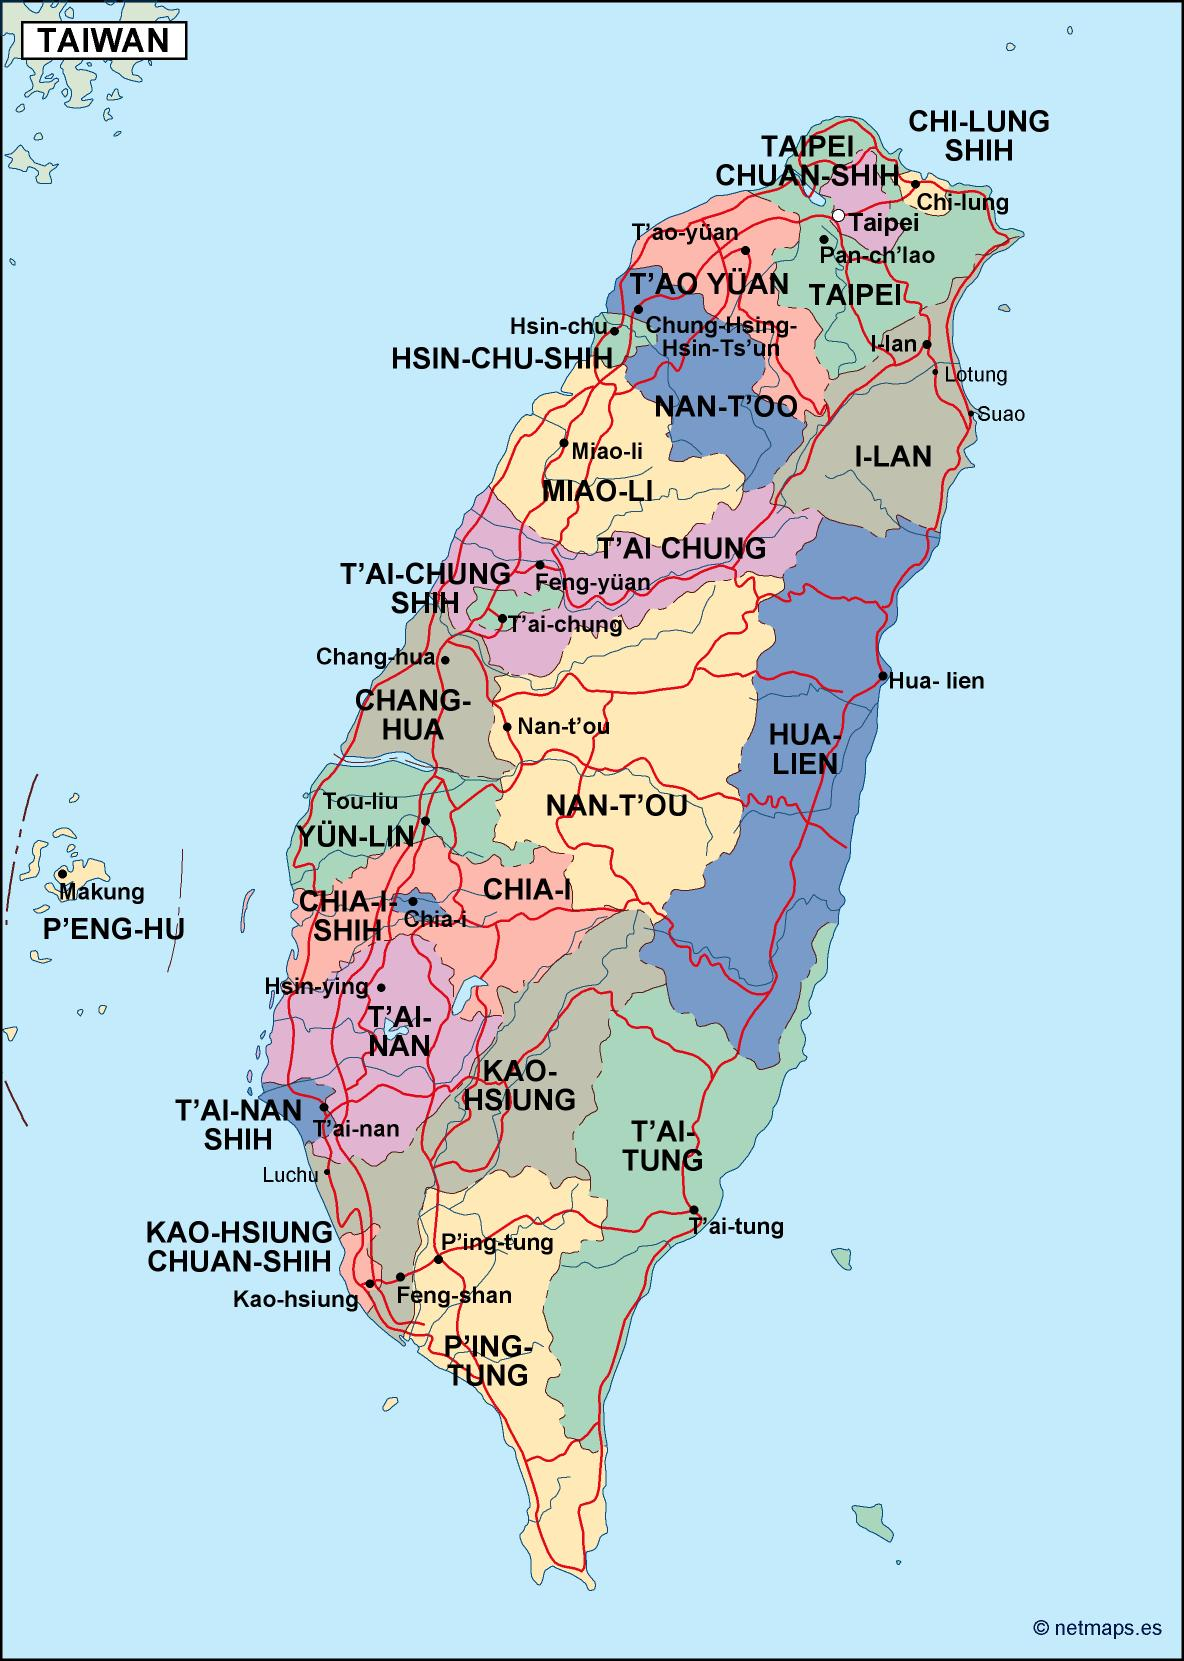 taiwan political map Eps Illustrator Map Our cartographers have